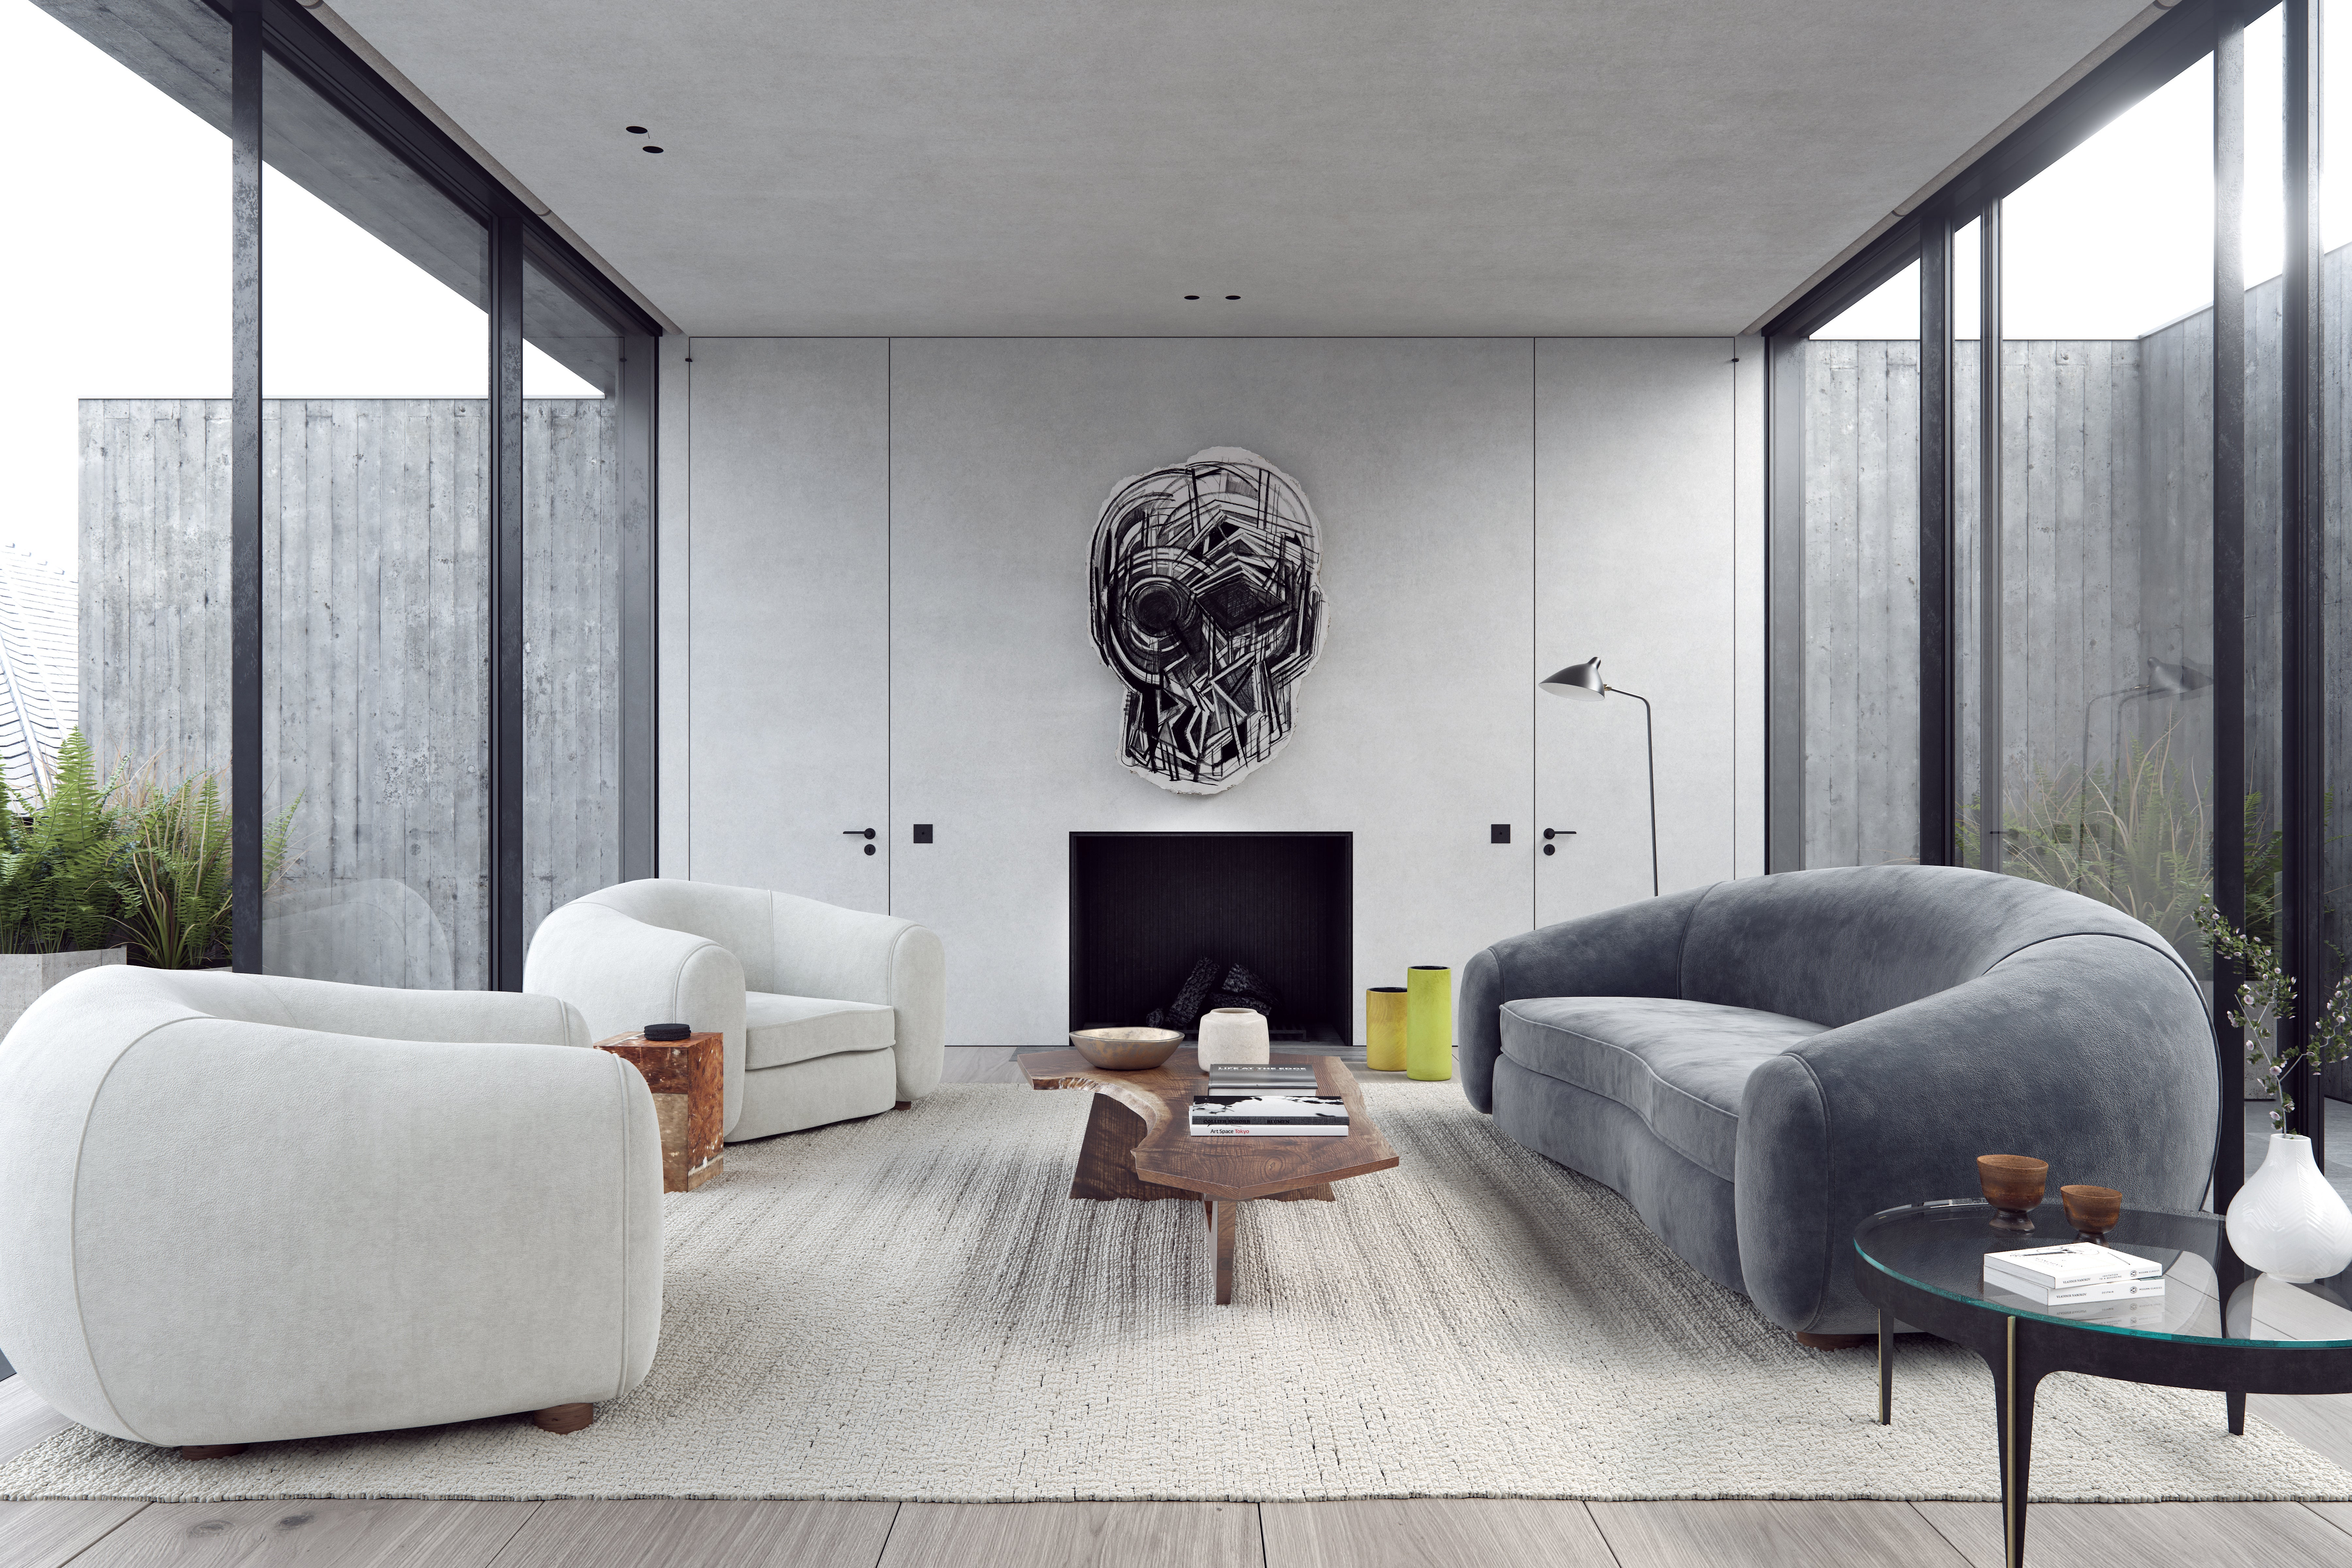 WV-OR Penthouse By Nicolas Schuybroek Architects On 1stdibs